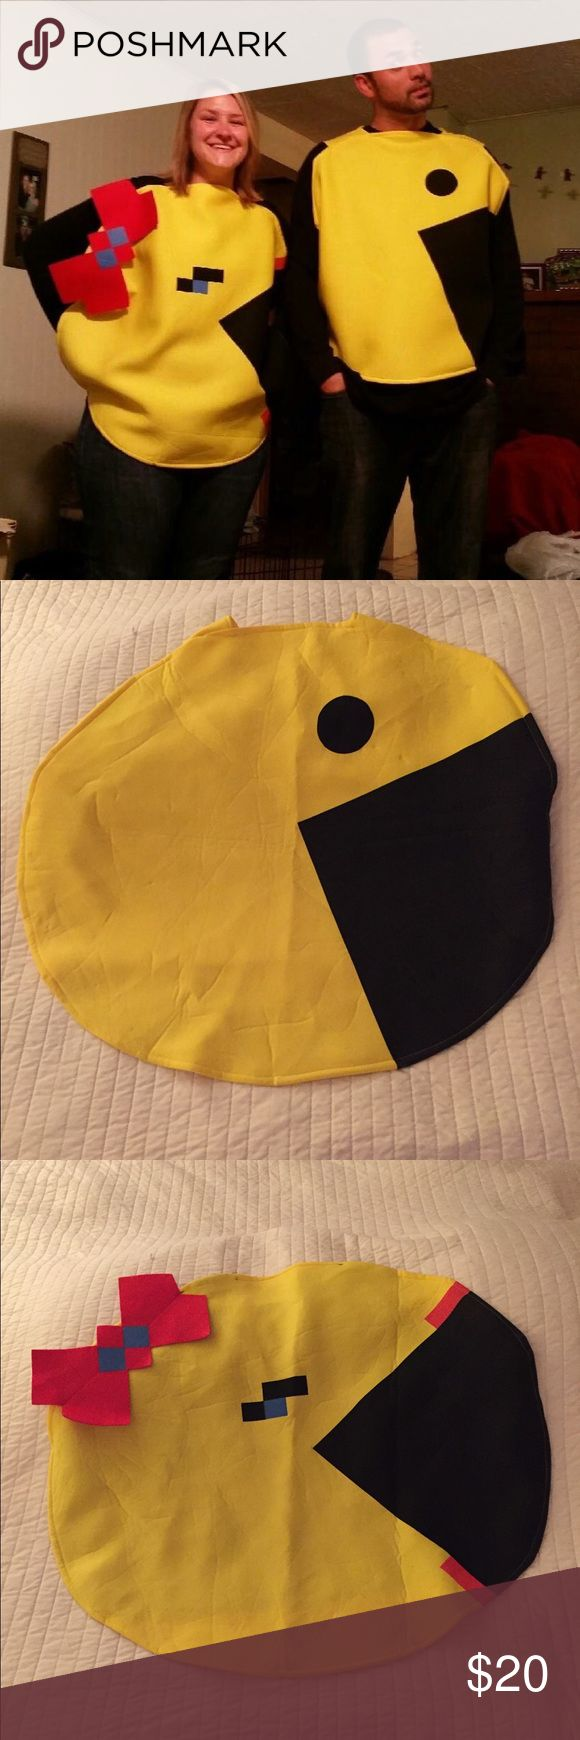 Mr. & Mrs. PAC-man costumes! Both for $20 Mr. and Mrs. PAC-man Halloween costume! Very cute, yet simple pullover costume! Wear whatever underneath, I suggest black because it makes the costume stand out better! Velcro closure in the neckline on the back! Incogneato Other